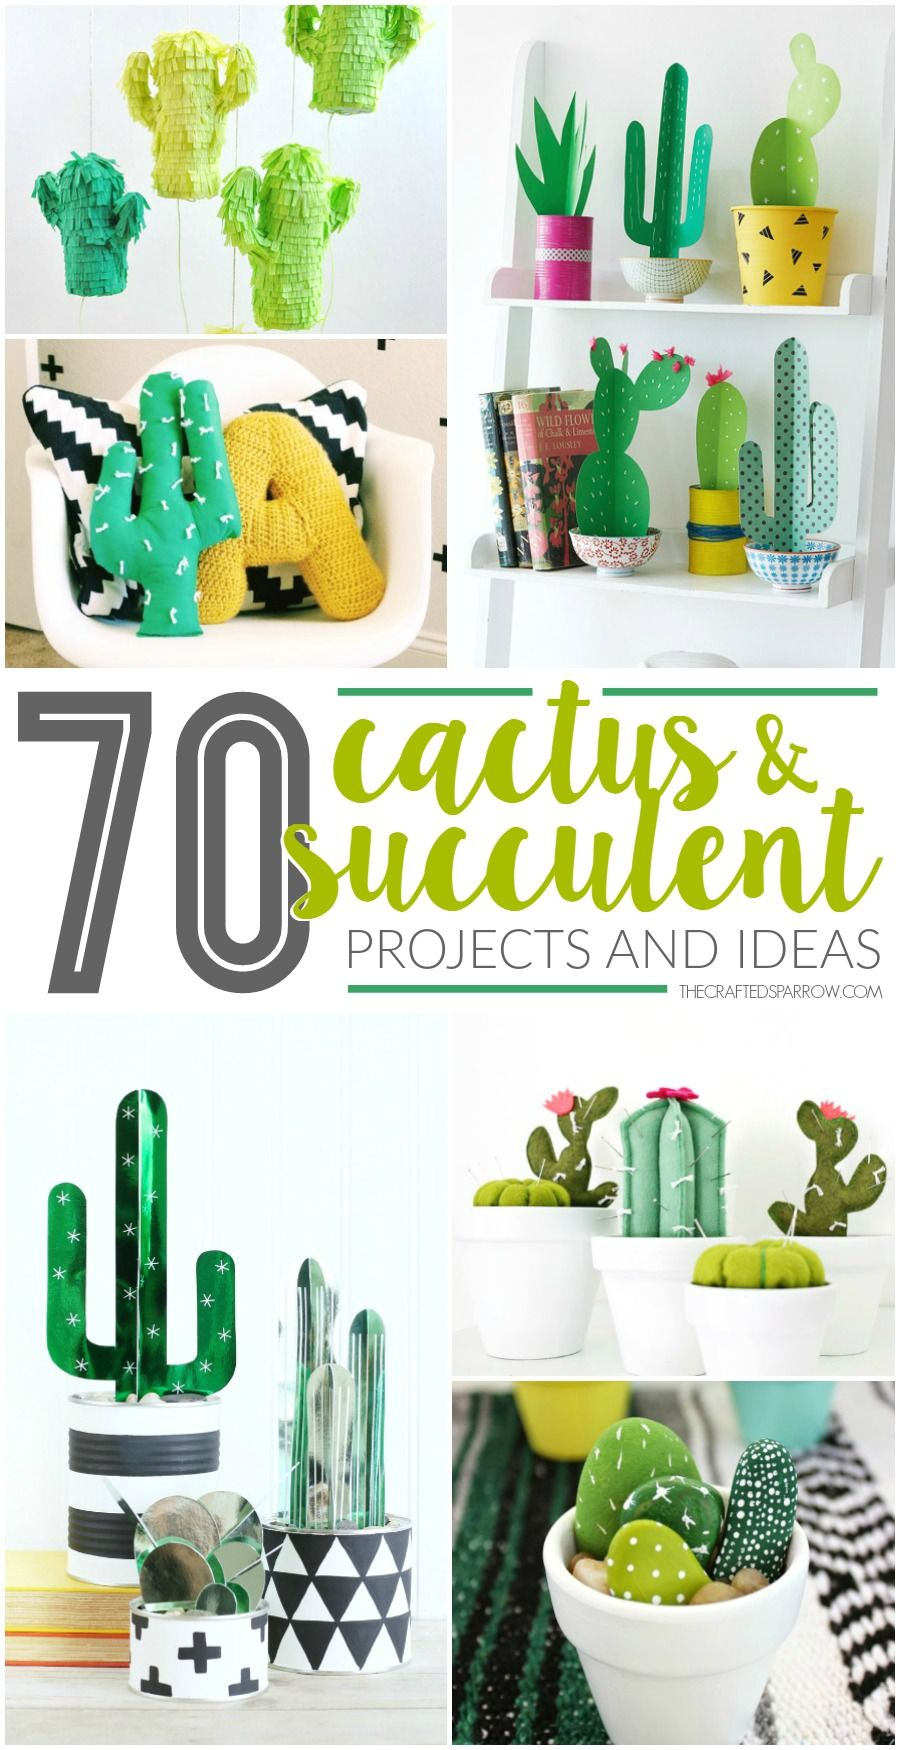 70 Faux Cactus & Succulent Projects and Ideas Crafts